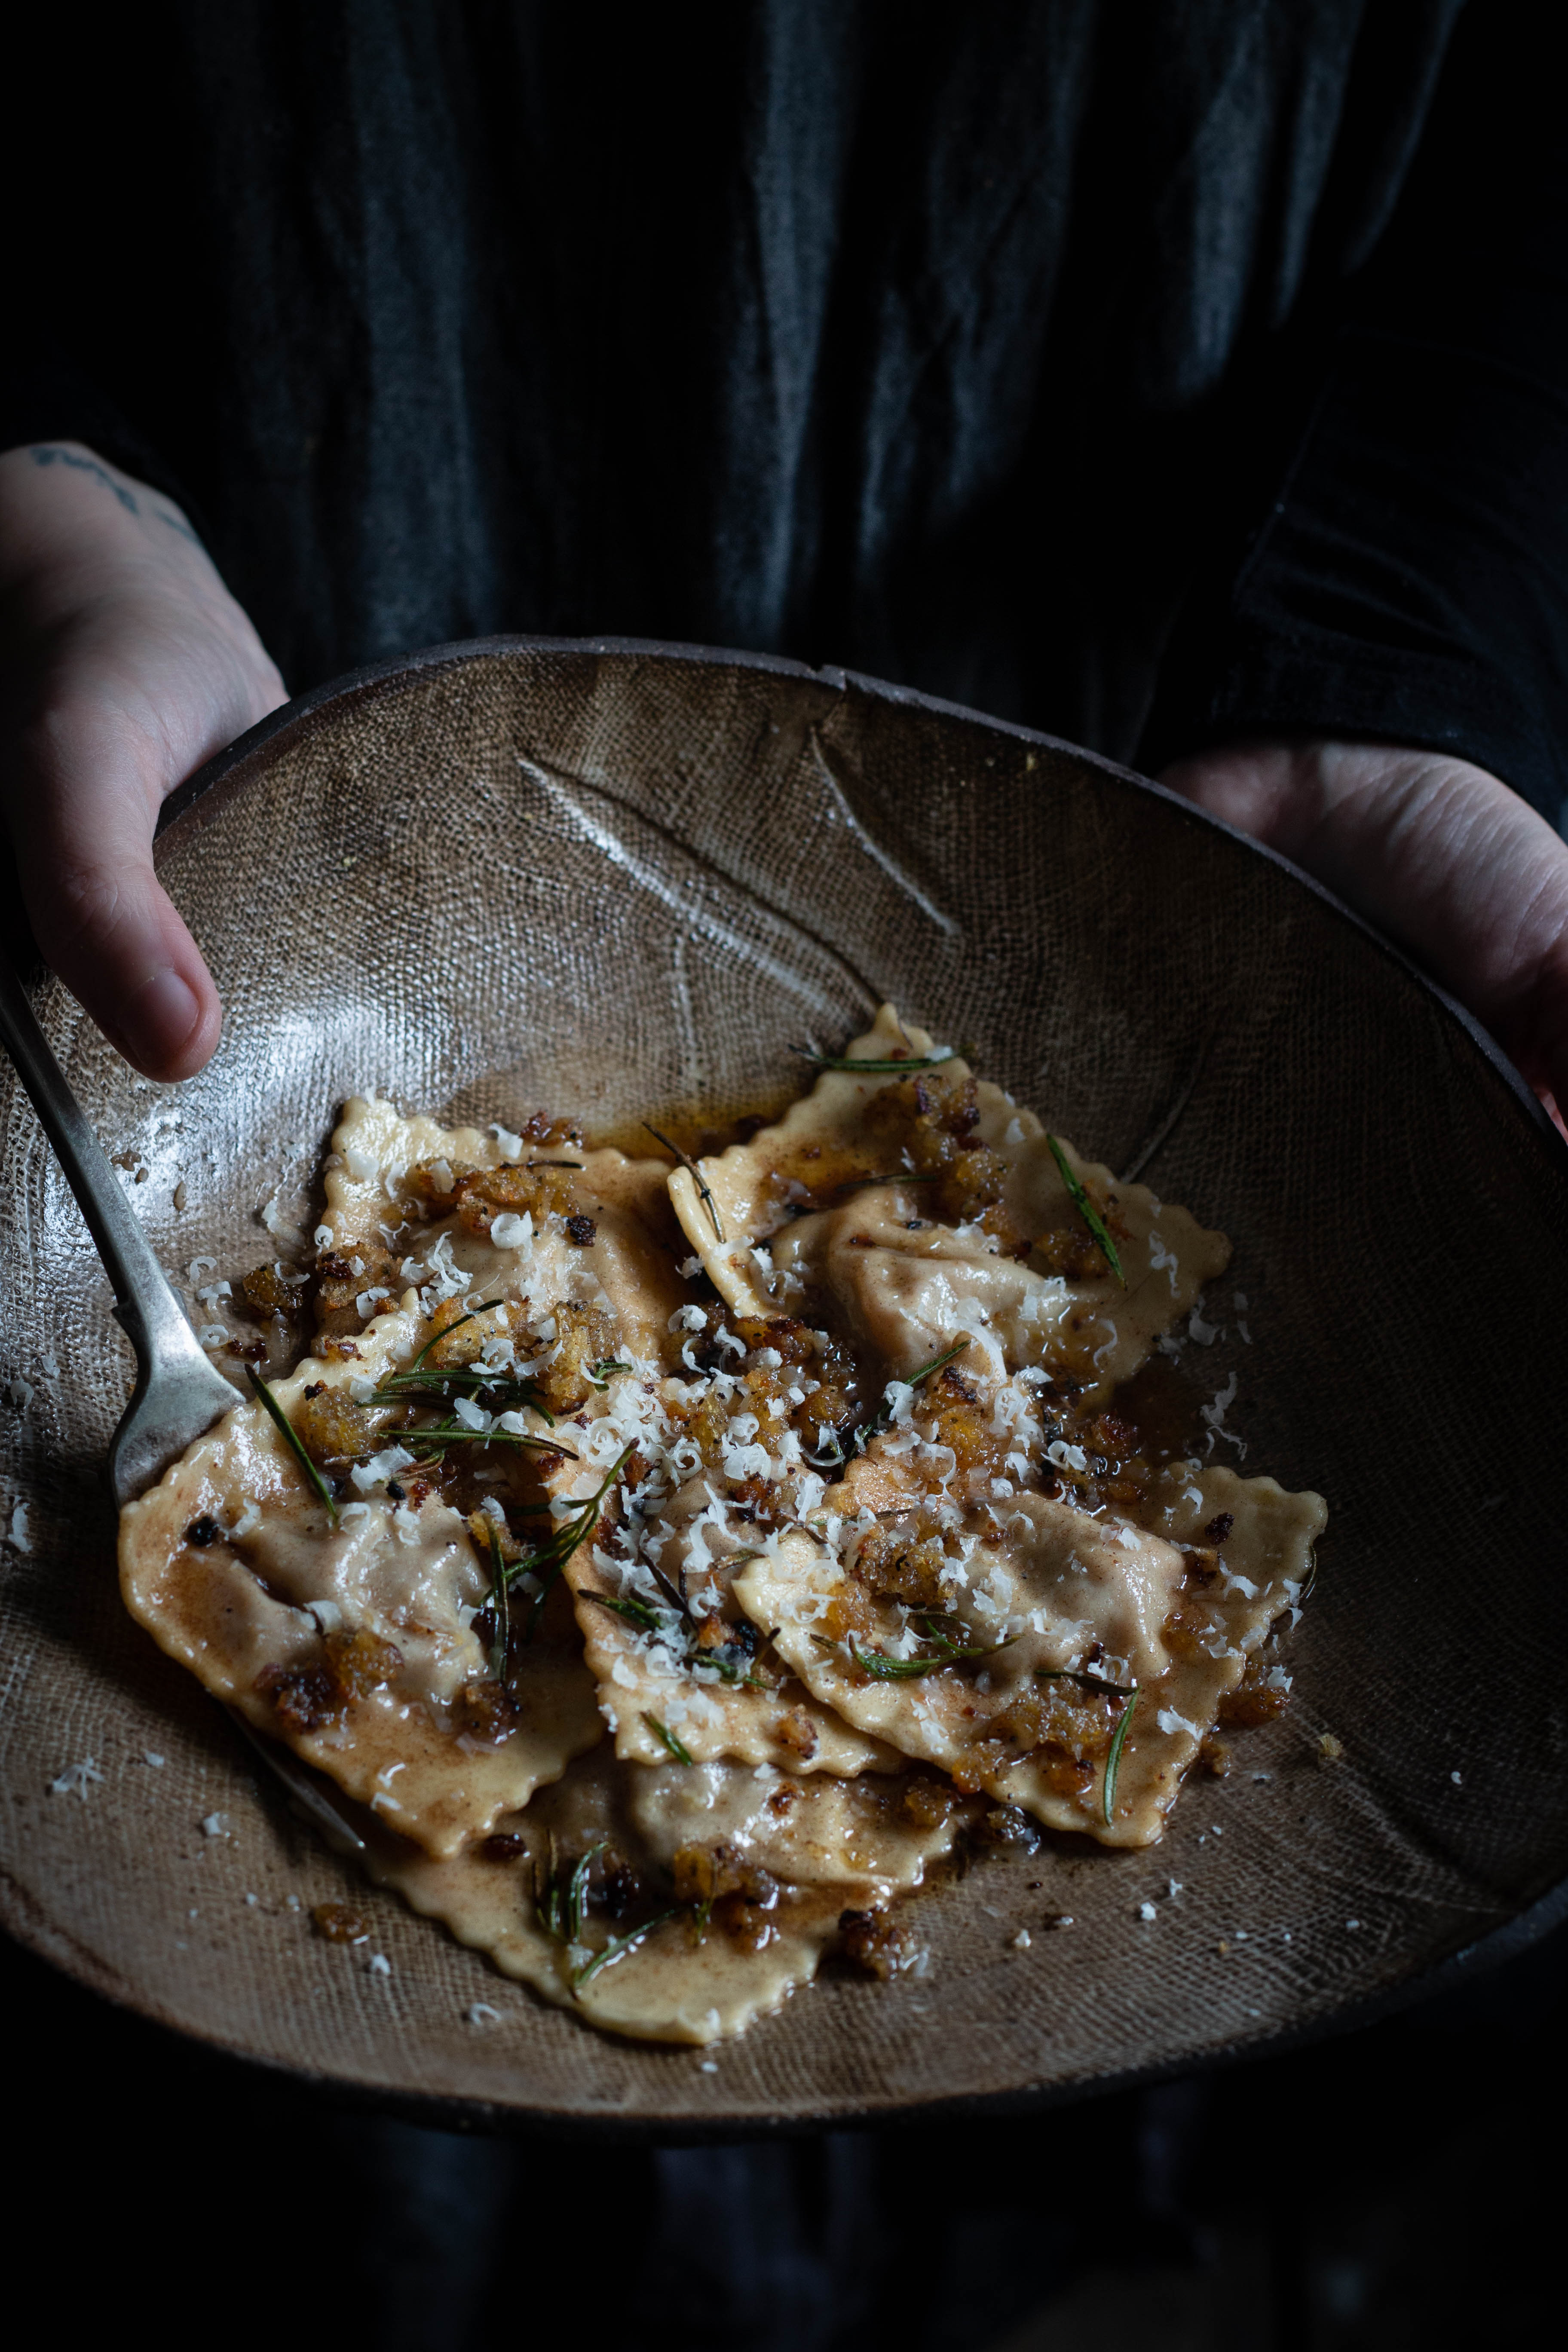 Braised lamb ravioli and wine pairing suggestions